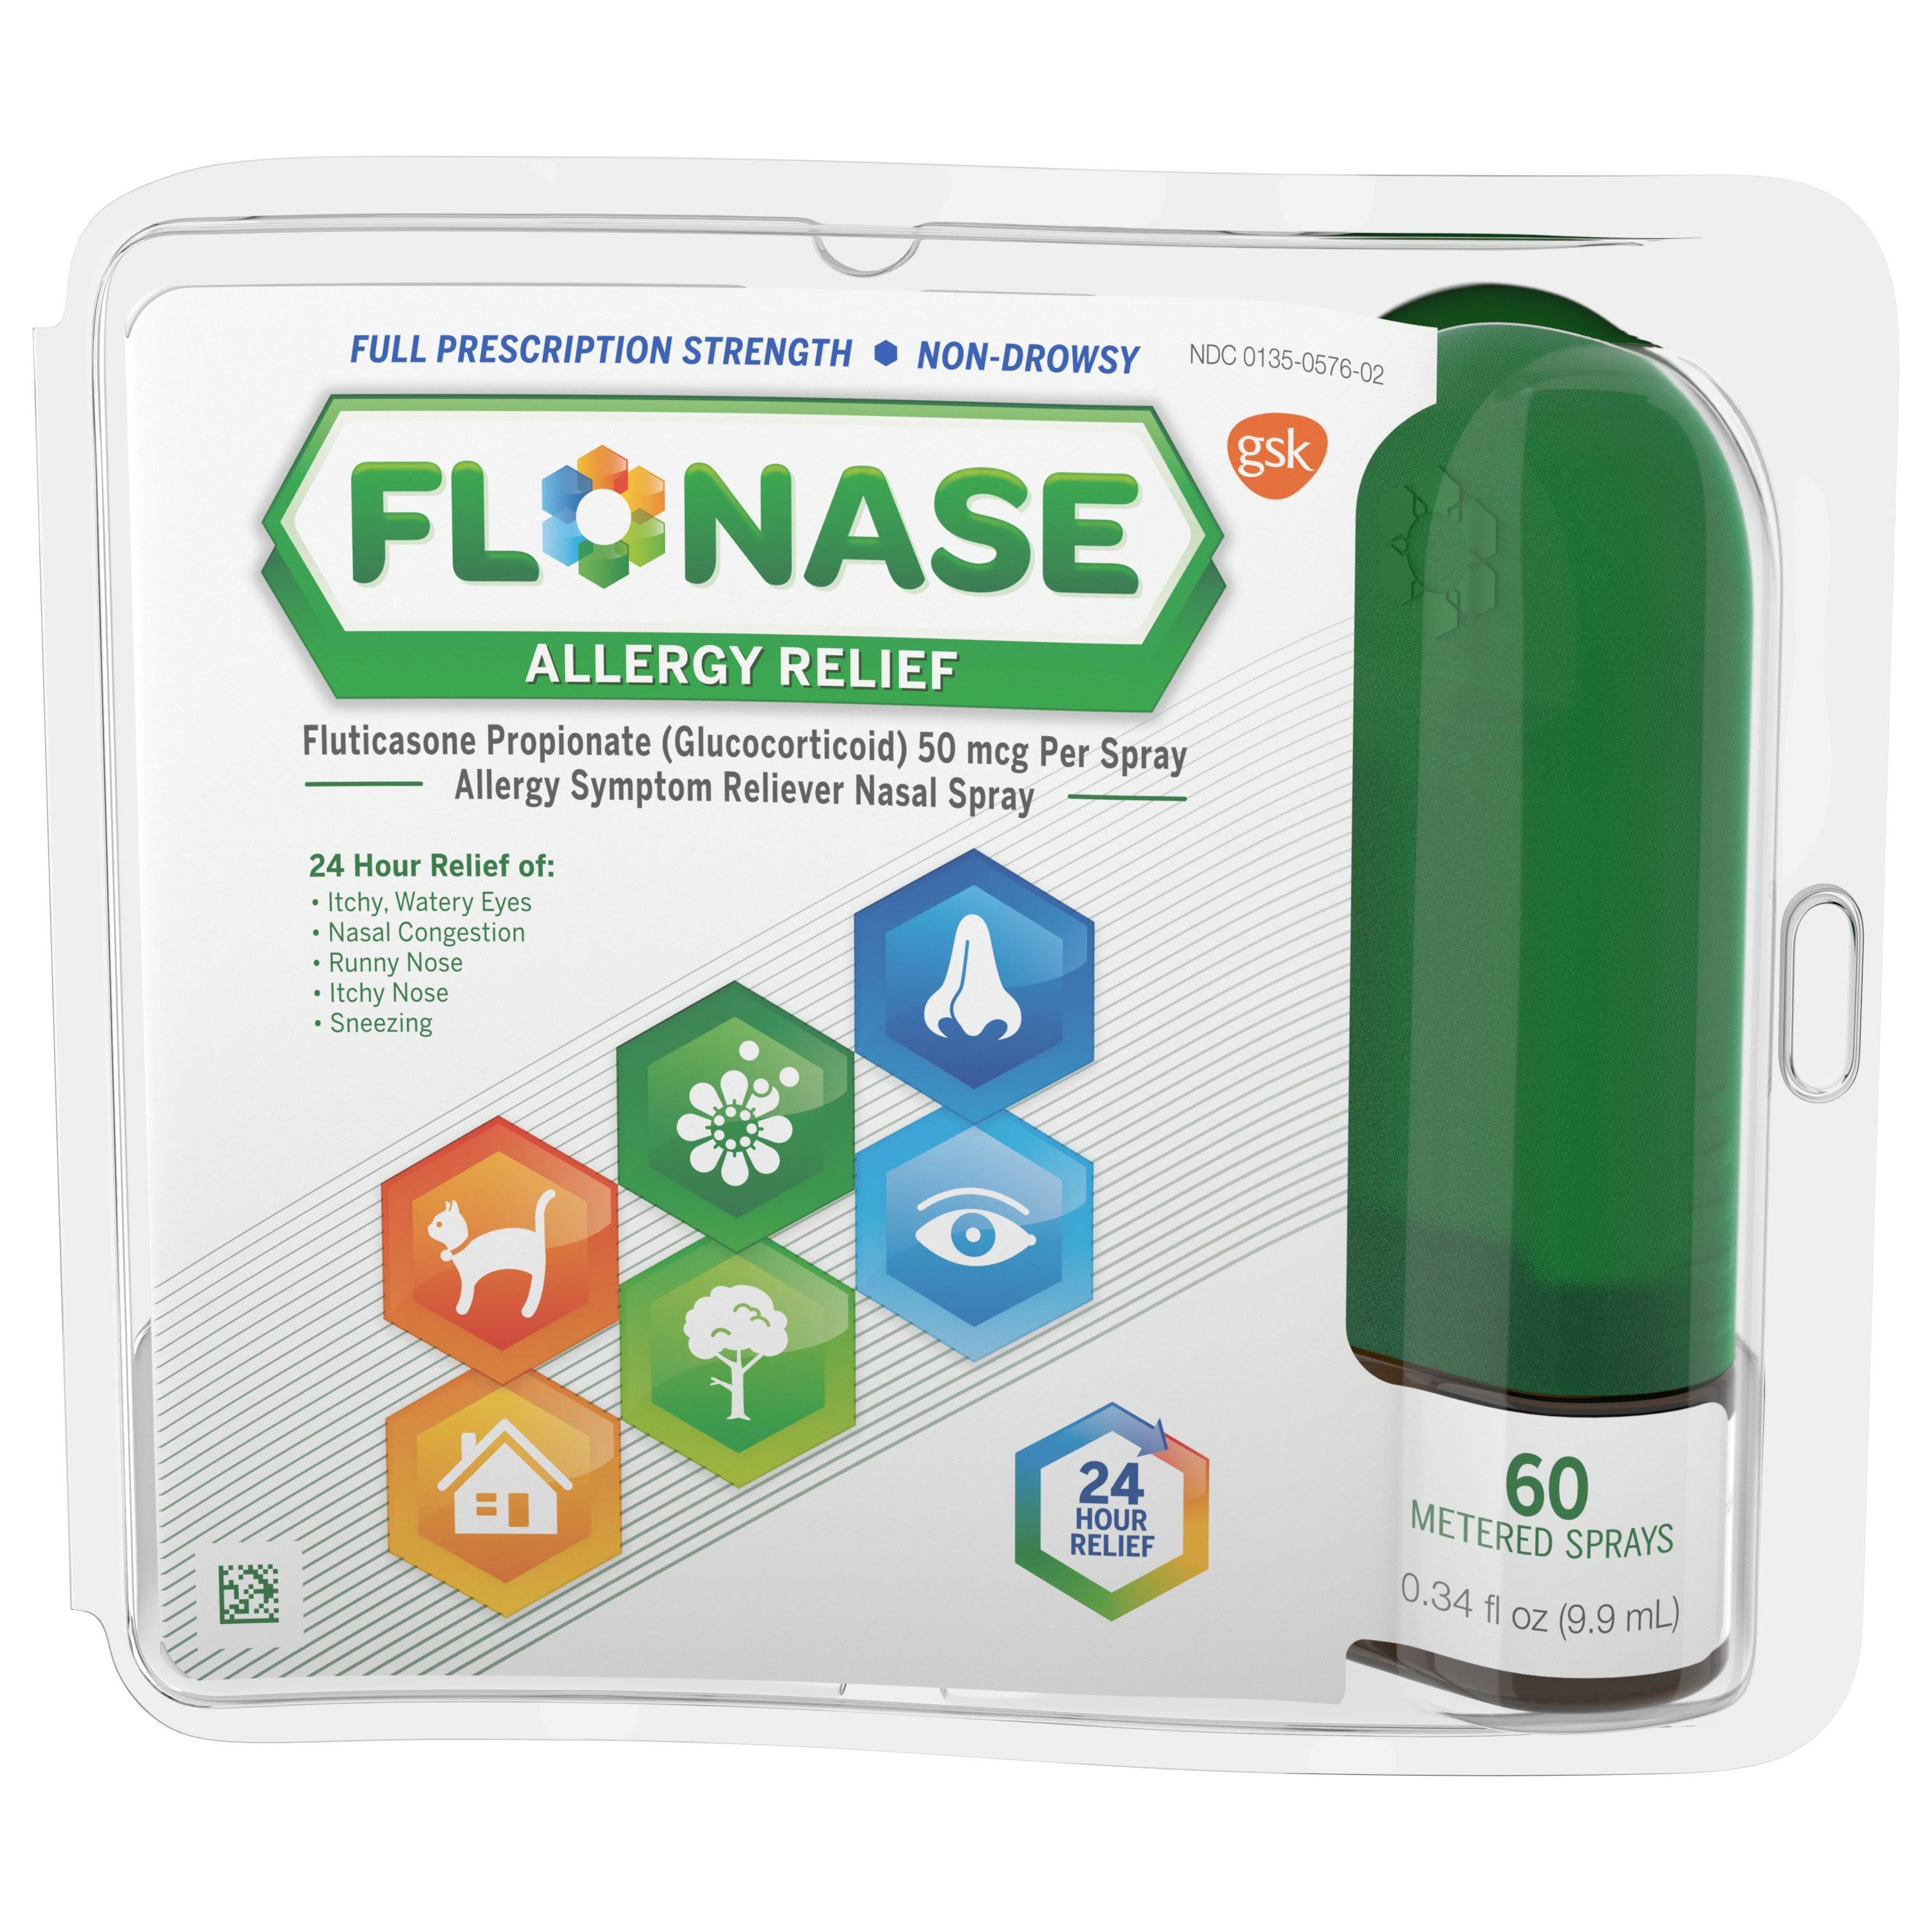 Flonase Allergy Relief Nasal Spray - 0.34oz